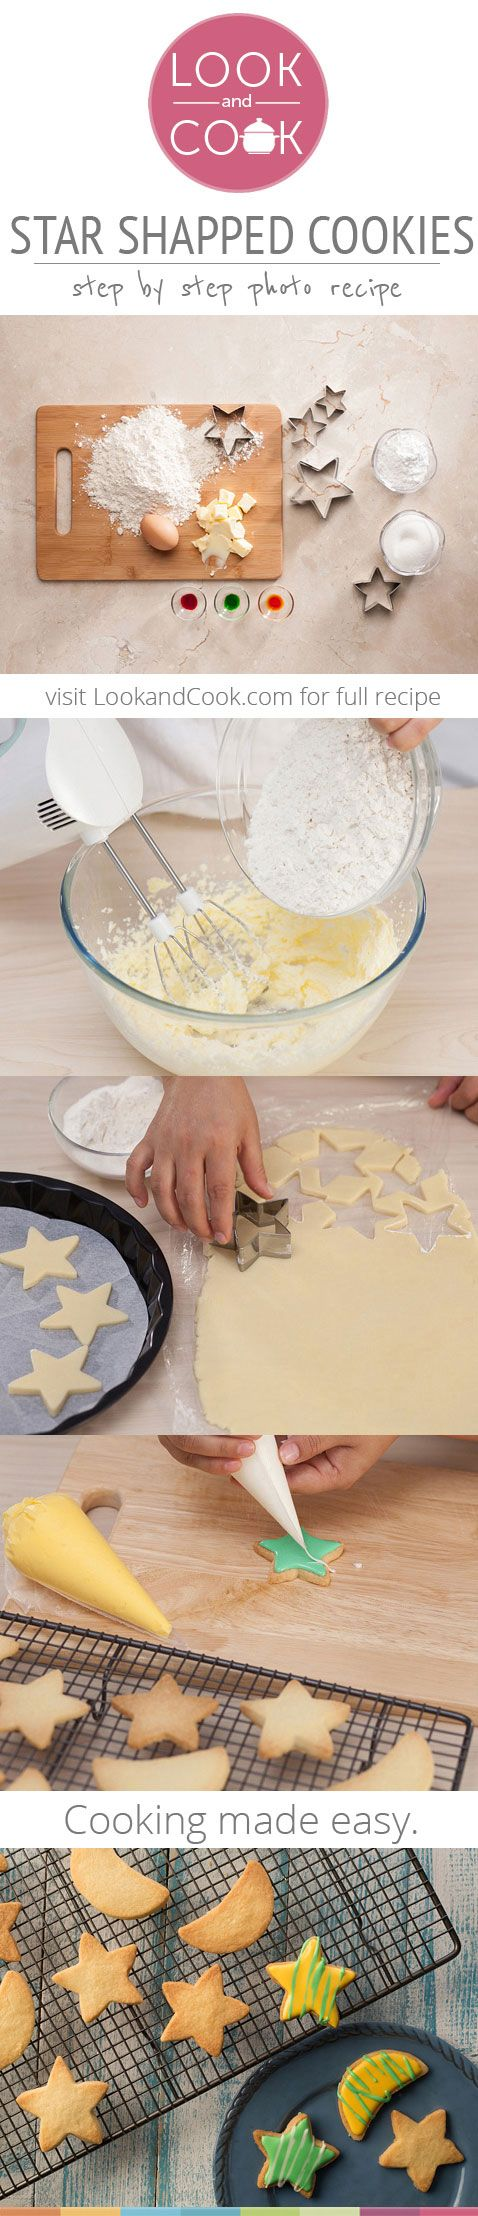 STAR SHAPED COOKIES RECIPE STAR SHAPED COOKIES(#LC14078): These delicious cookies are easy to cook and taste as good as the real. Festive, star shaped cookies are perfect for New Years! It is a great appetizer or a snack and relish!